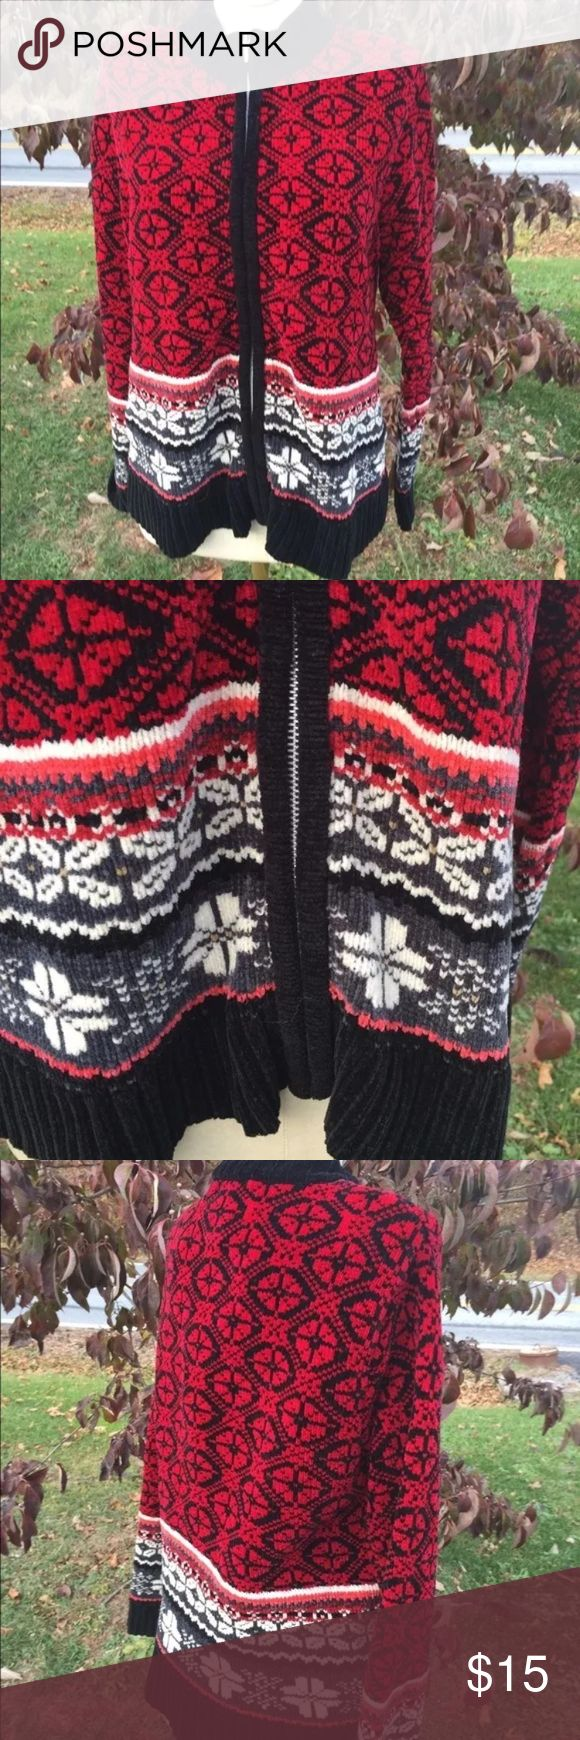 """Ugly Christmas Sweater Super Soft Cardigan Sky Size Petite small. Measures: shoulder to shoulder: 15"""". Pit to pit: 16"""". Bottom of the collar in the back to the bottom of the sweater: 23"""". Zippered front. Be sure to view the other items in our closet. We offer  women's, Mens and kids items in a variety of sizes. Bundle and save!! We love reasonable offers!! Thank you for viewing our item!! Designer Studio Originals Sweaters Cardigans"""